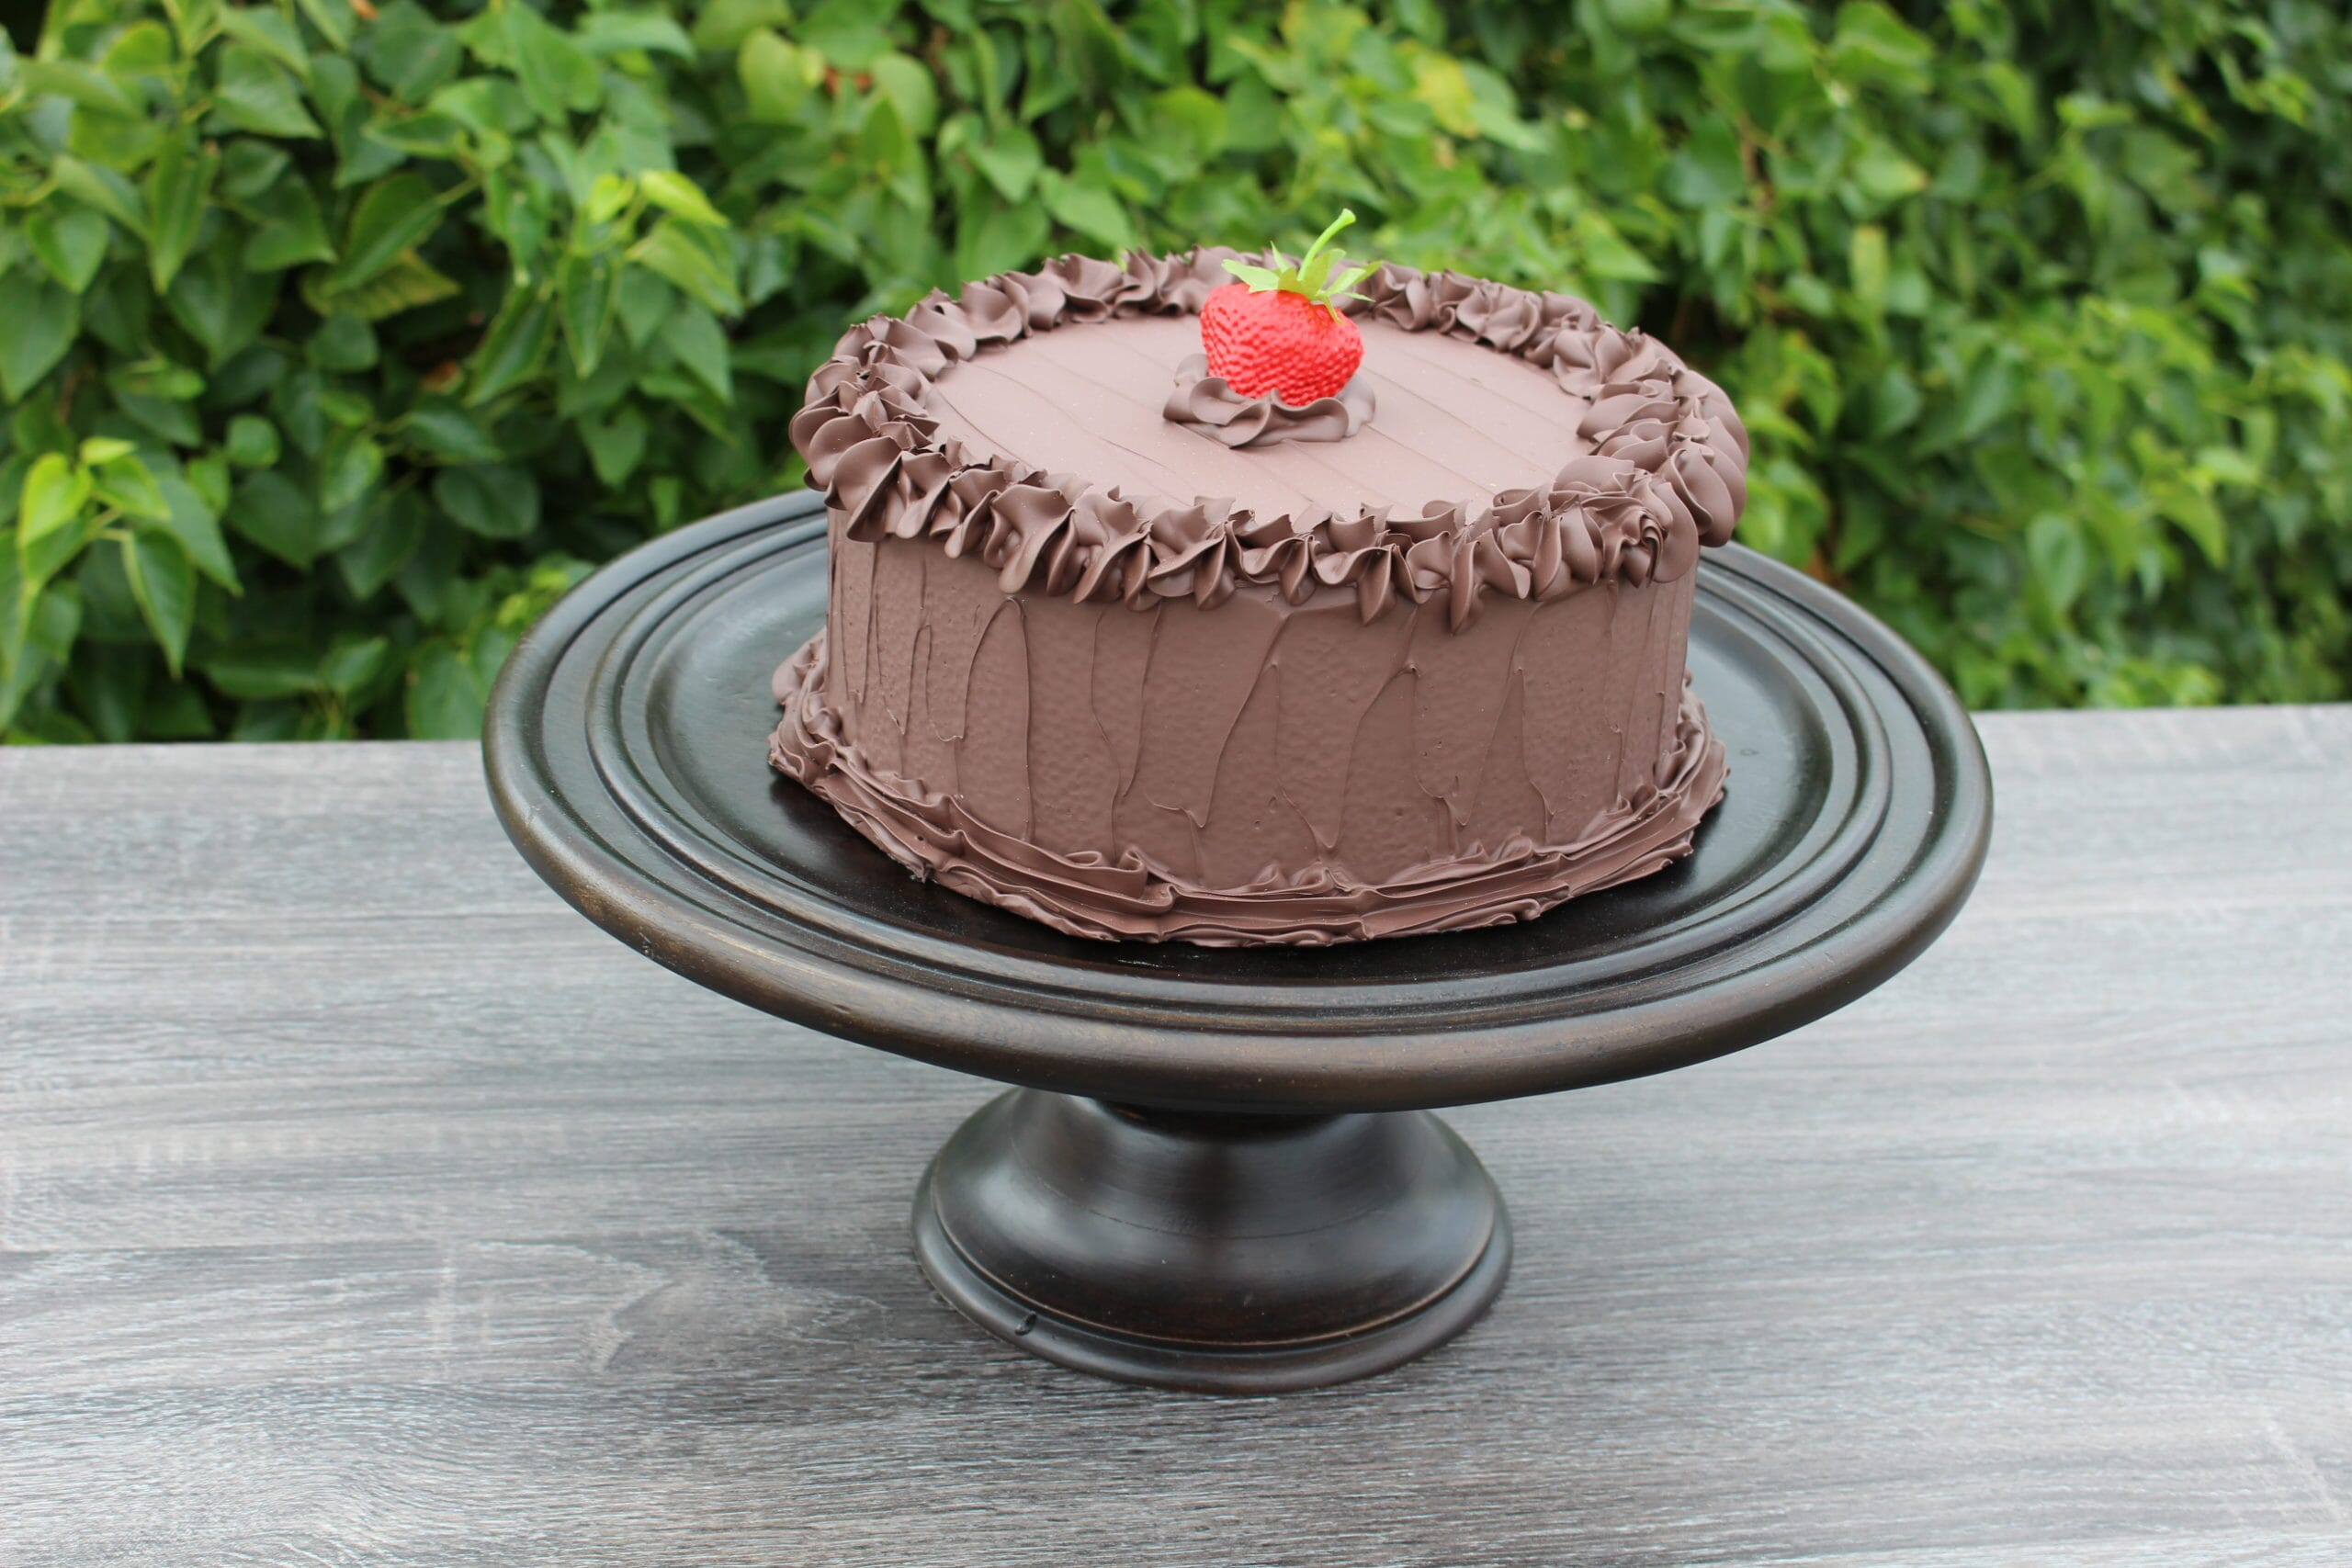 Fake Large Chocolate Frosted Cake